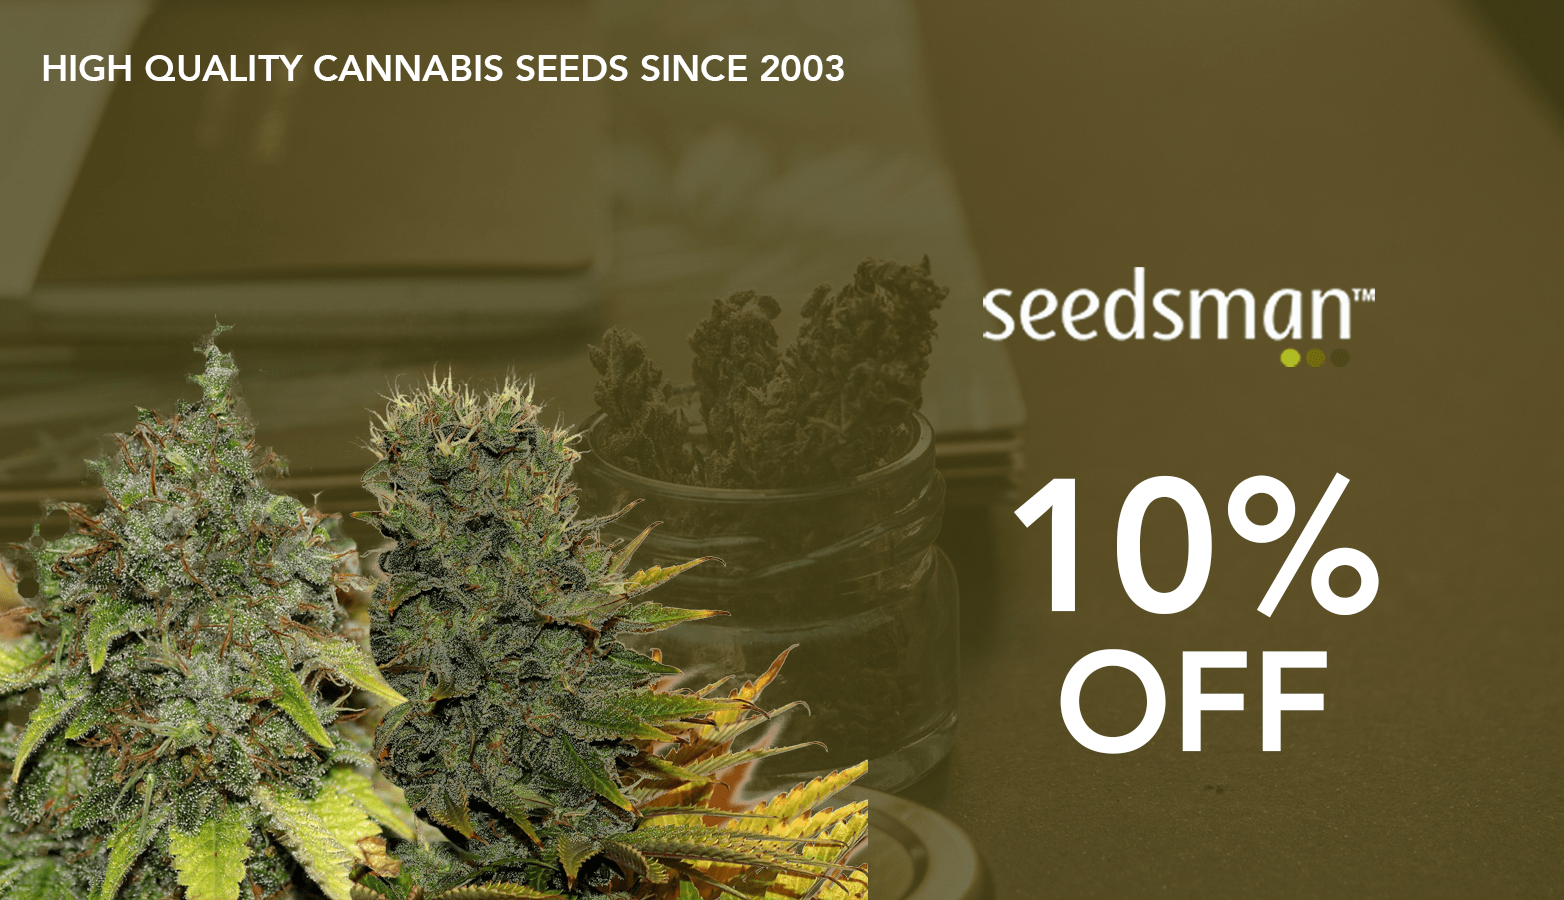 SeedsMan CBD Coupon Code discounts promos save on cannabis online Website